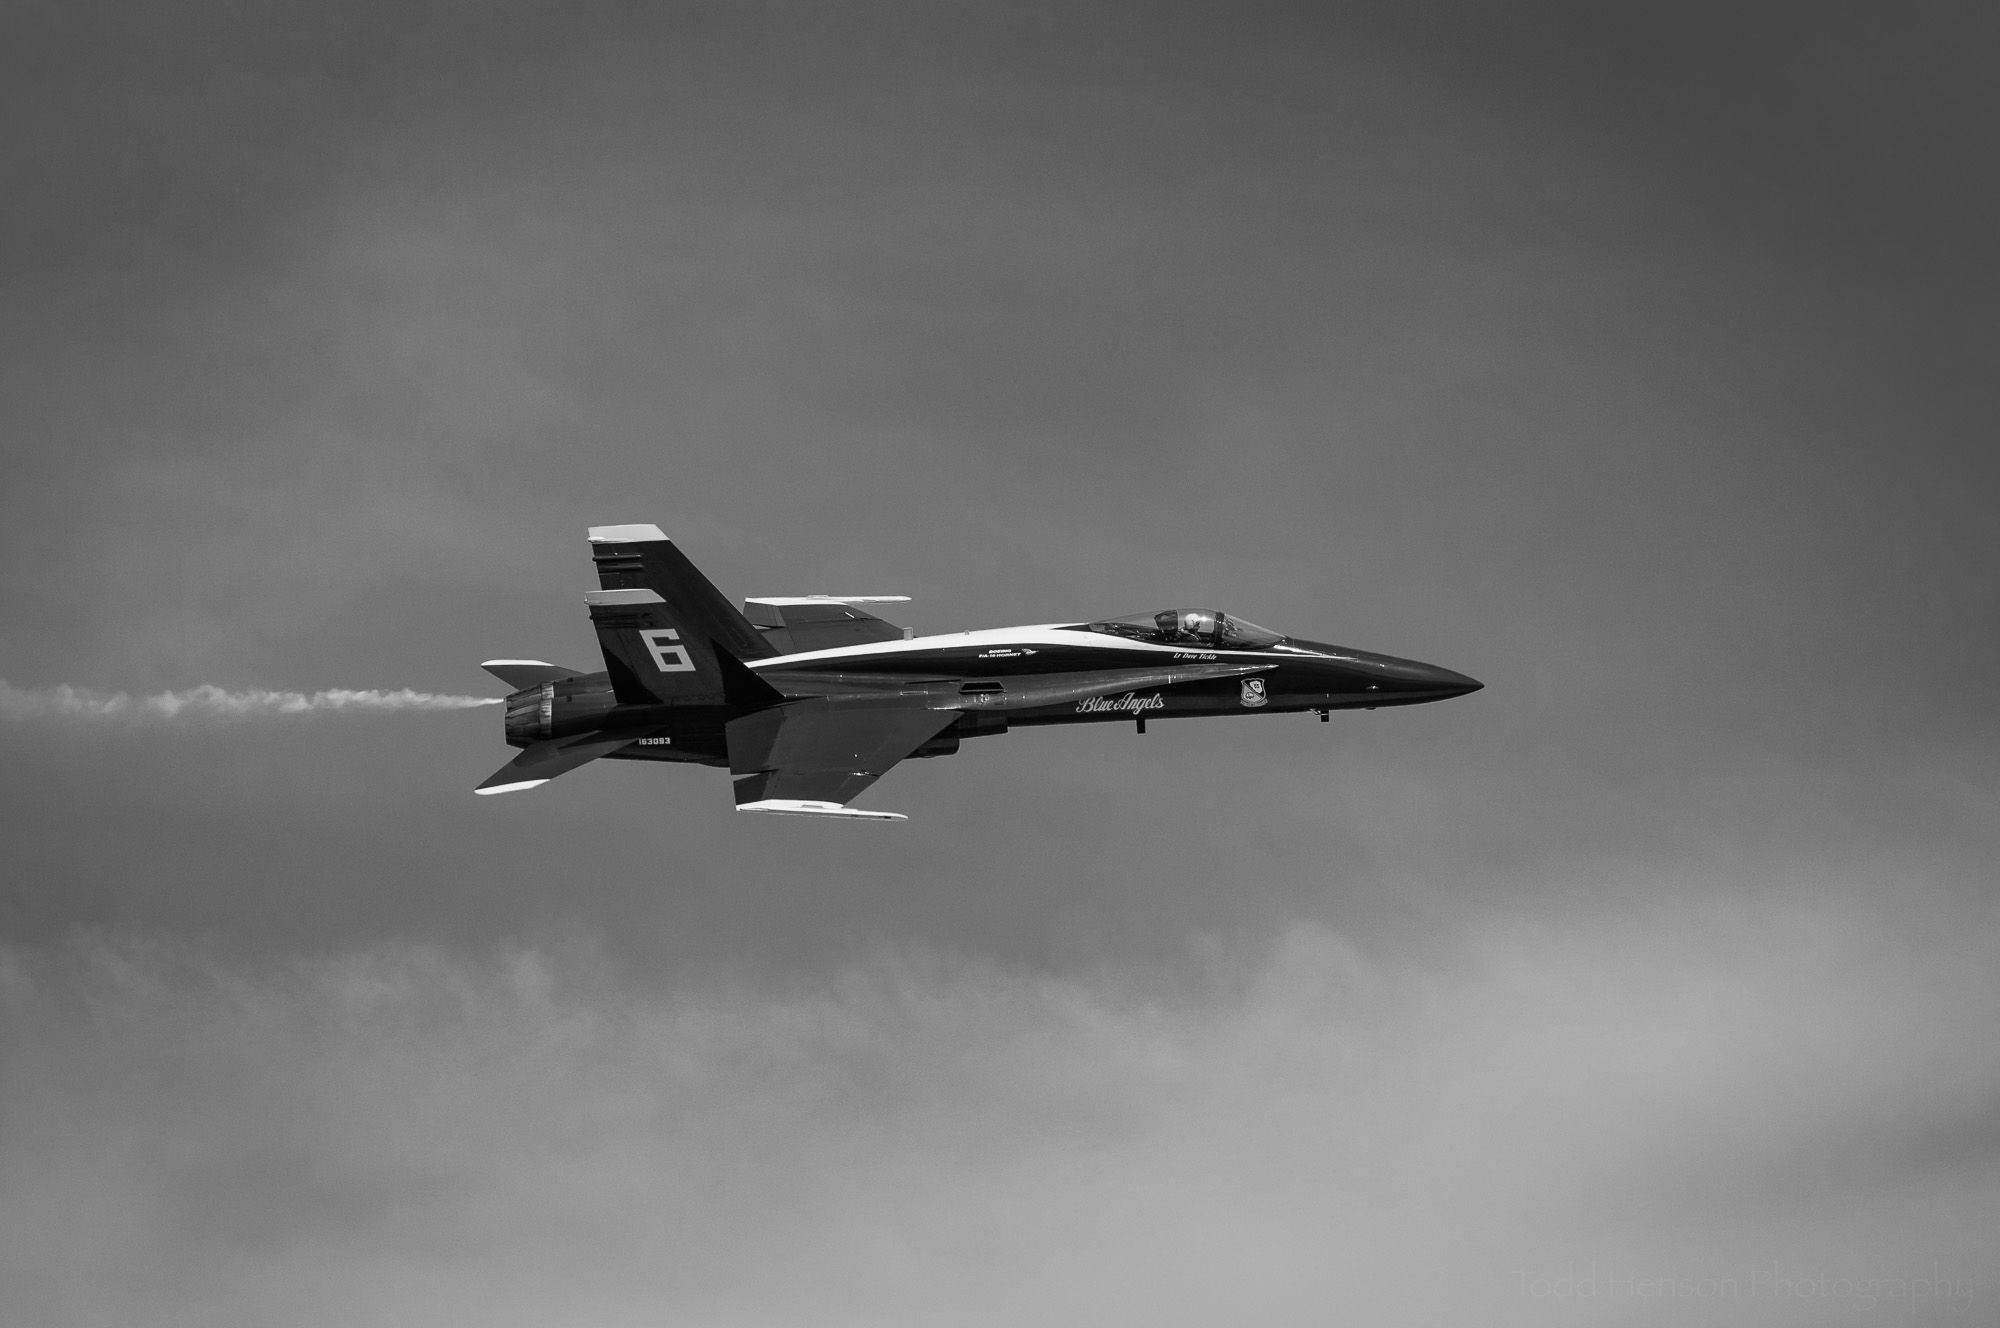 Blue Angels Flyby #2: USN F/A-18 performing a flyby.